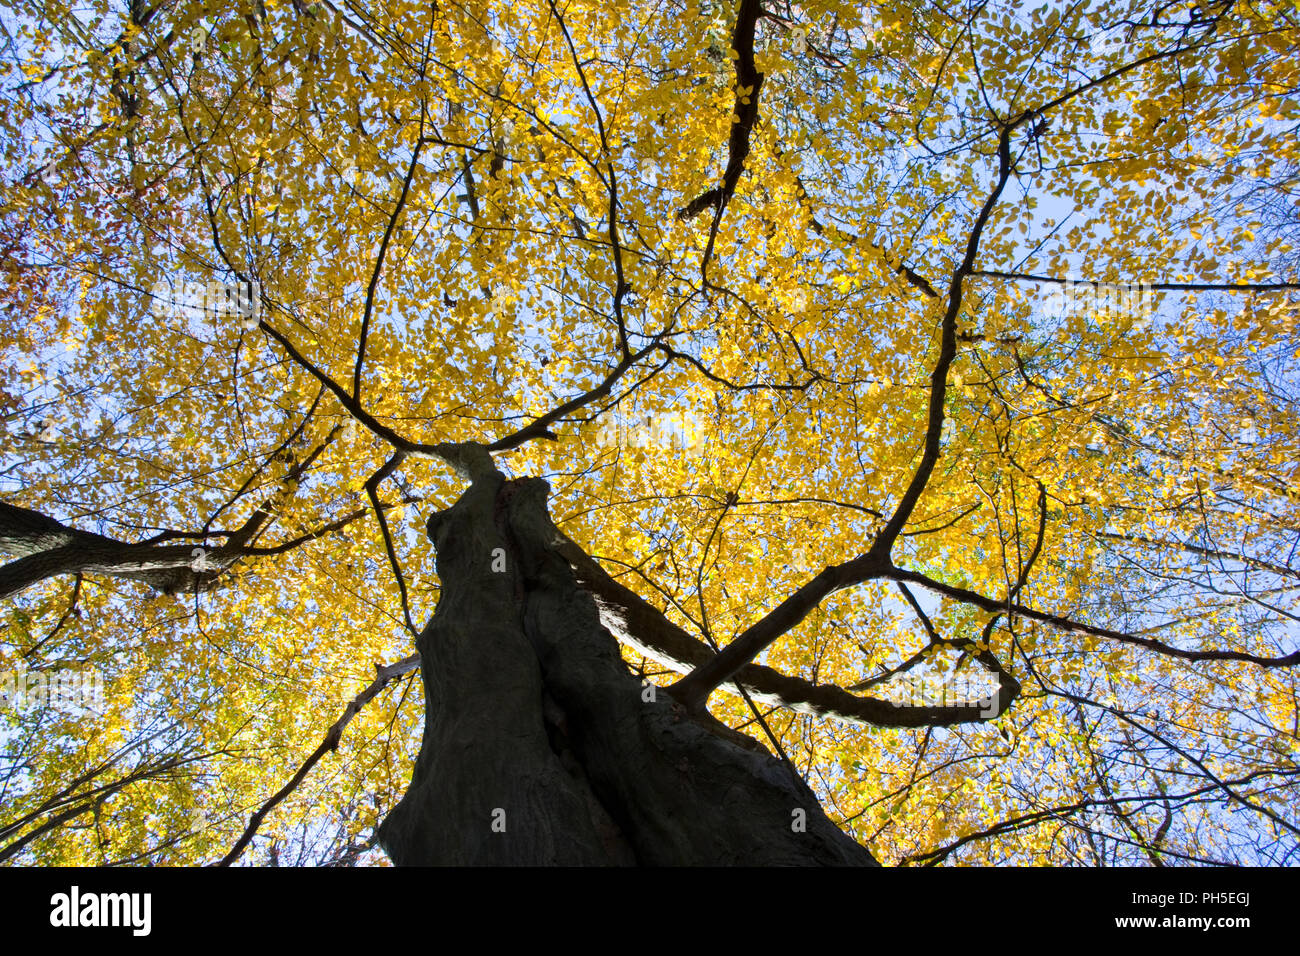 Beech tree Fagus sylvatica, leaf canopy turning to autumn colours photographed from underneath the tree looking up - Stock Image